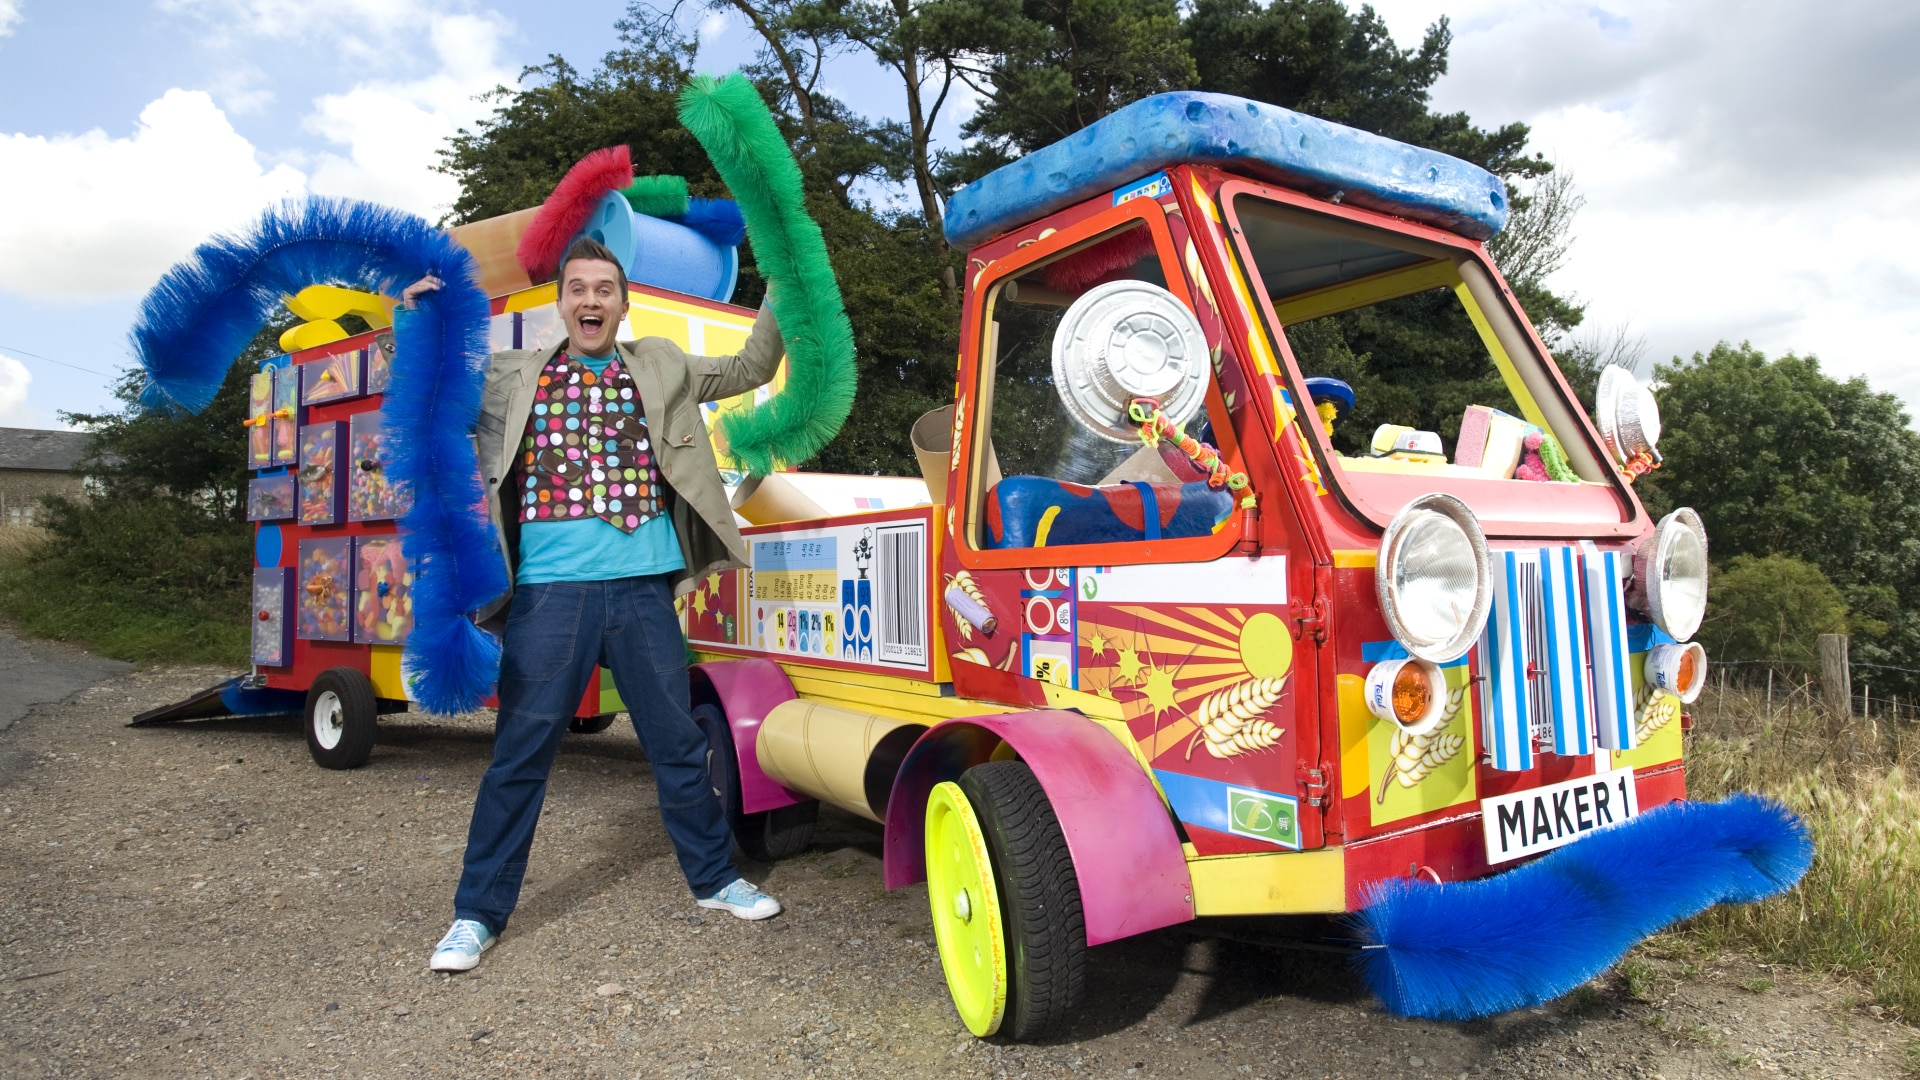 Mister Maker Comes To Town 7